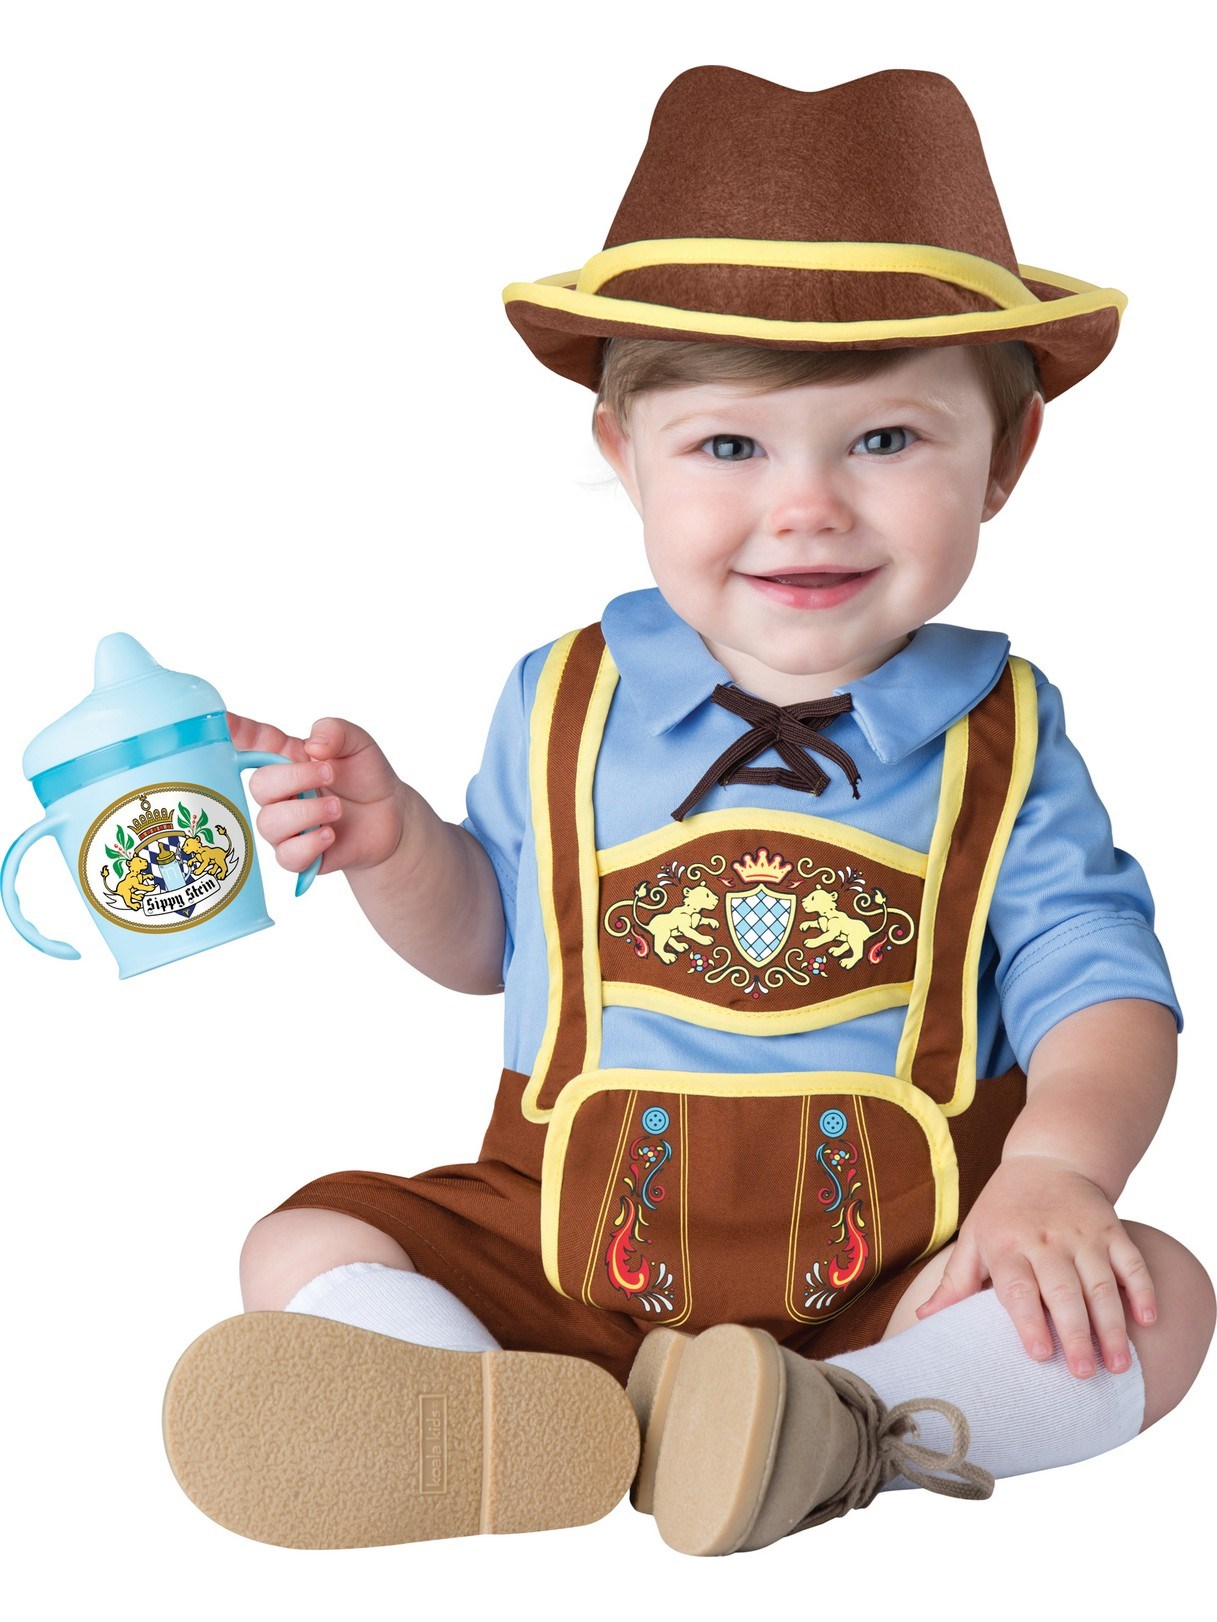 Baby Little Lederhosen Costume